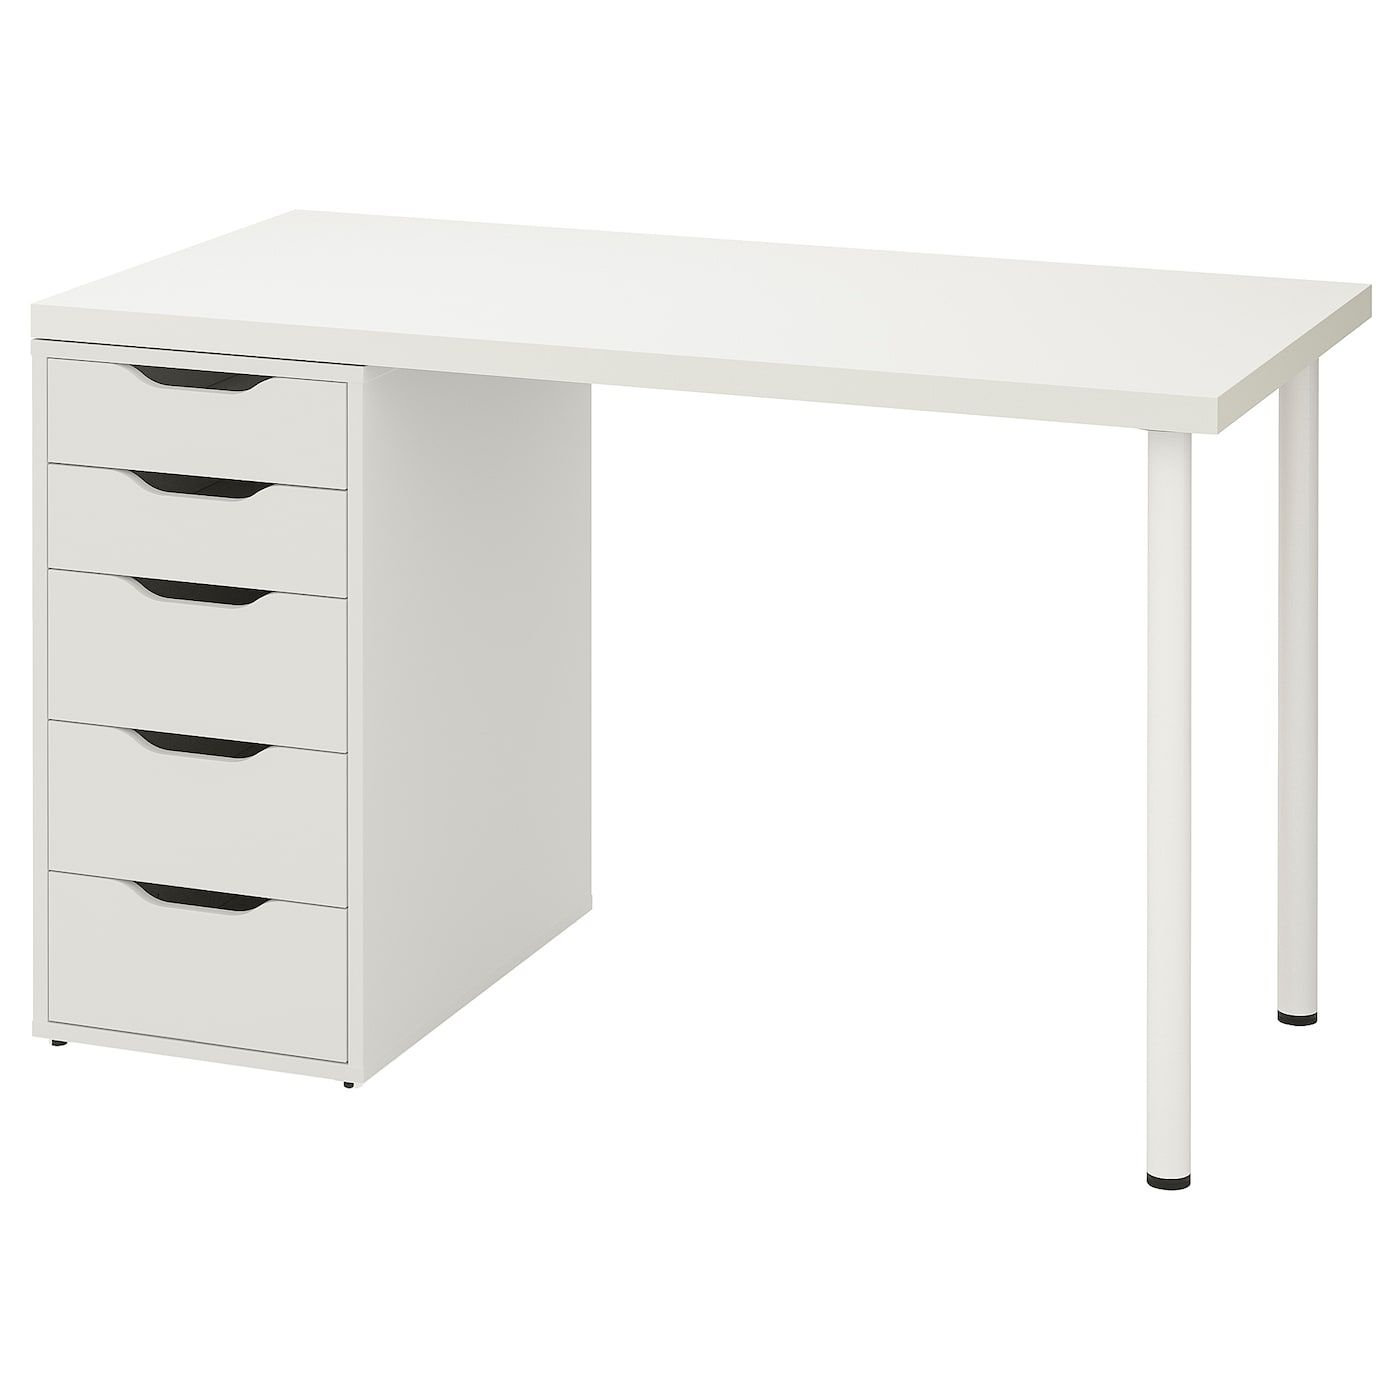 Linnmon Alex Table White 120x60 Cm In 2020 Ikea Drawer Unit Wall Shelf Unit